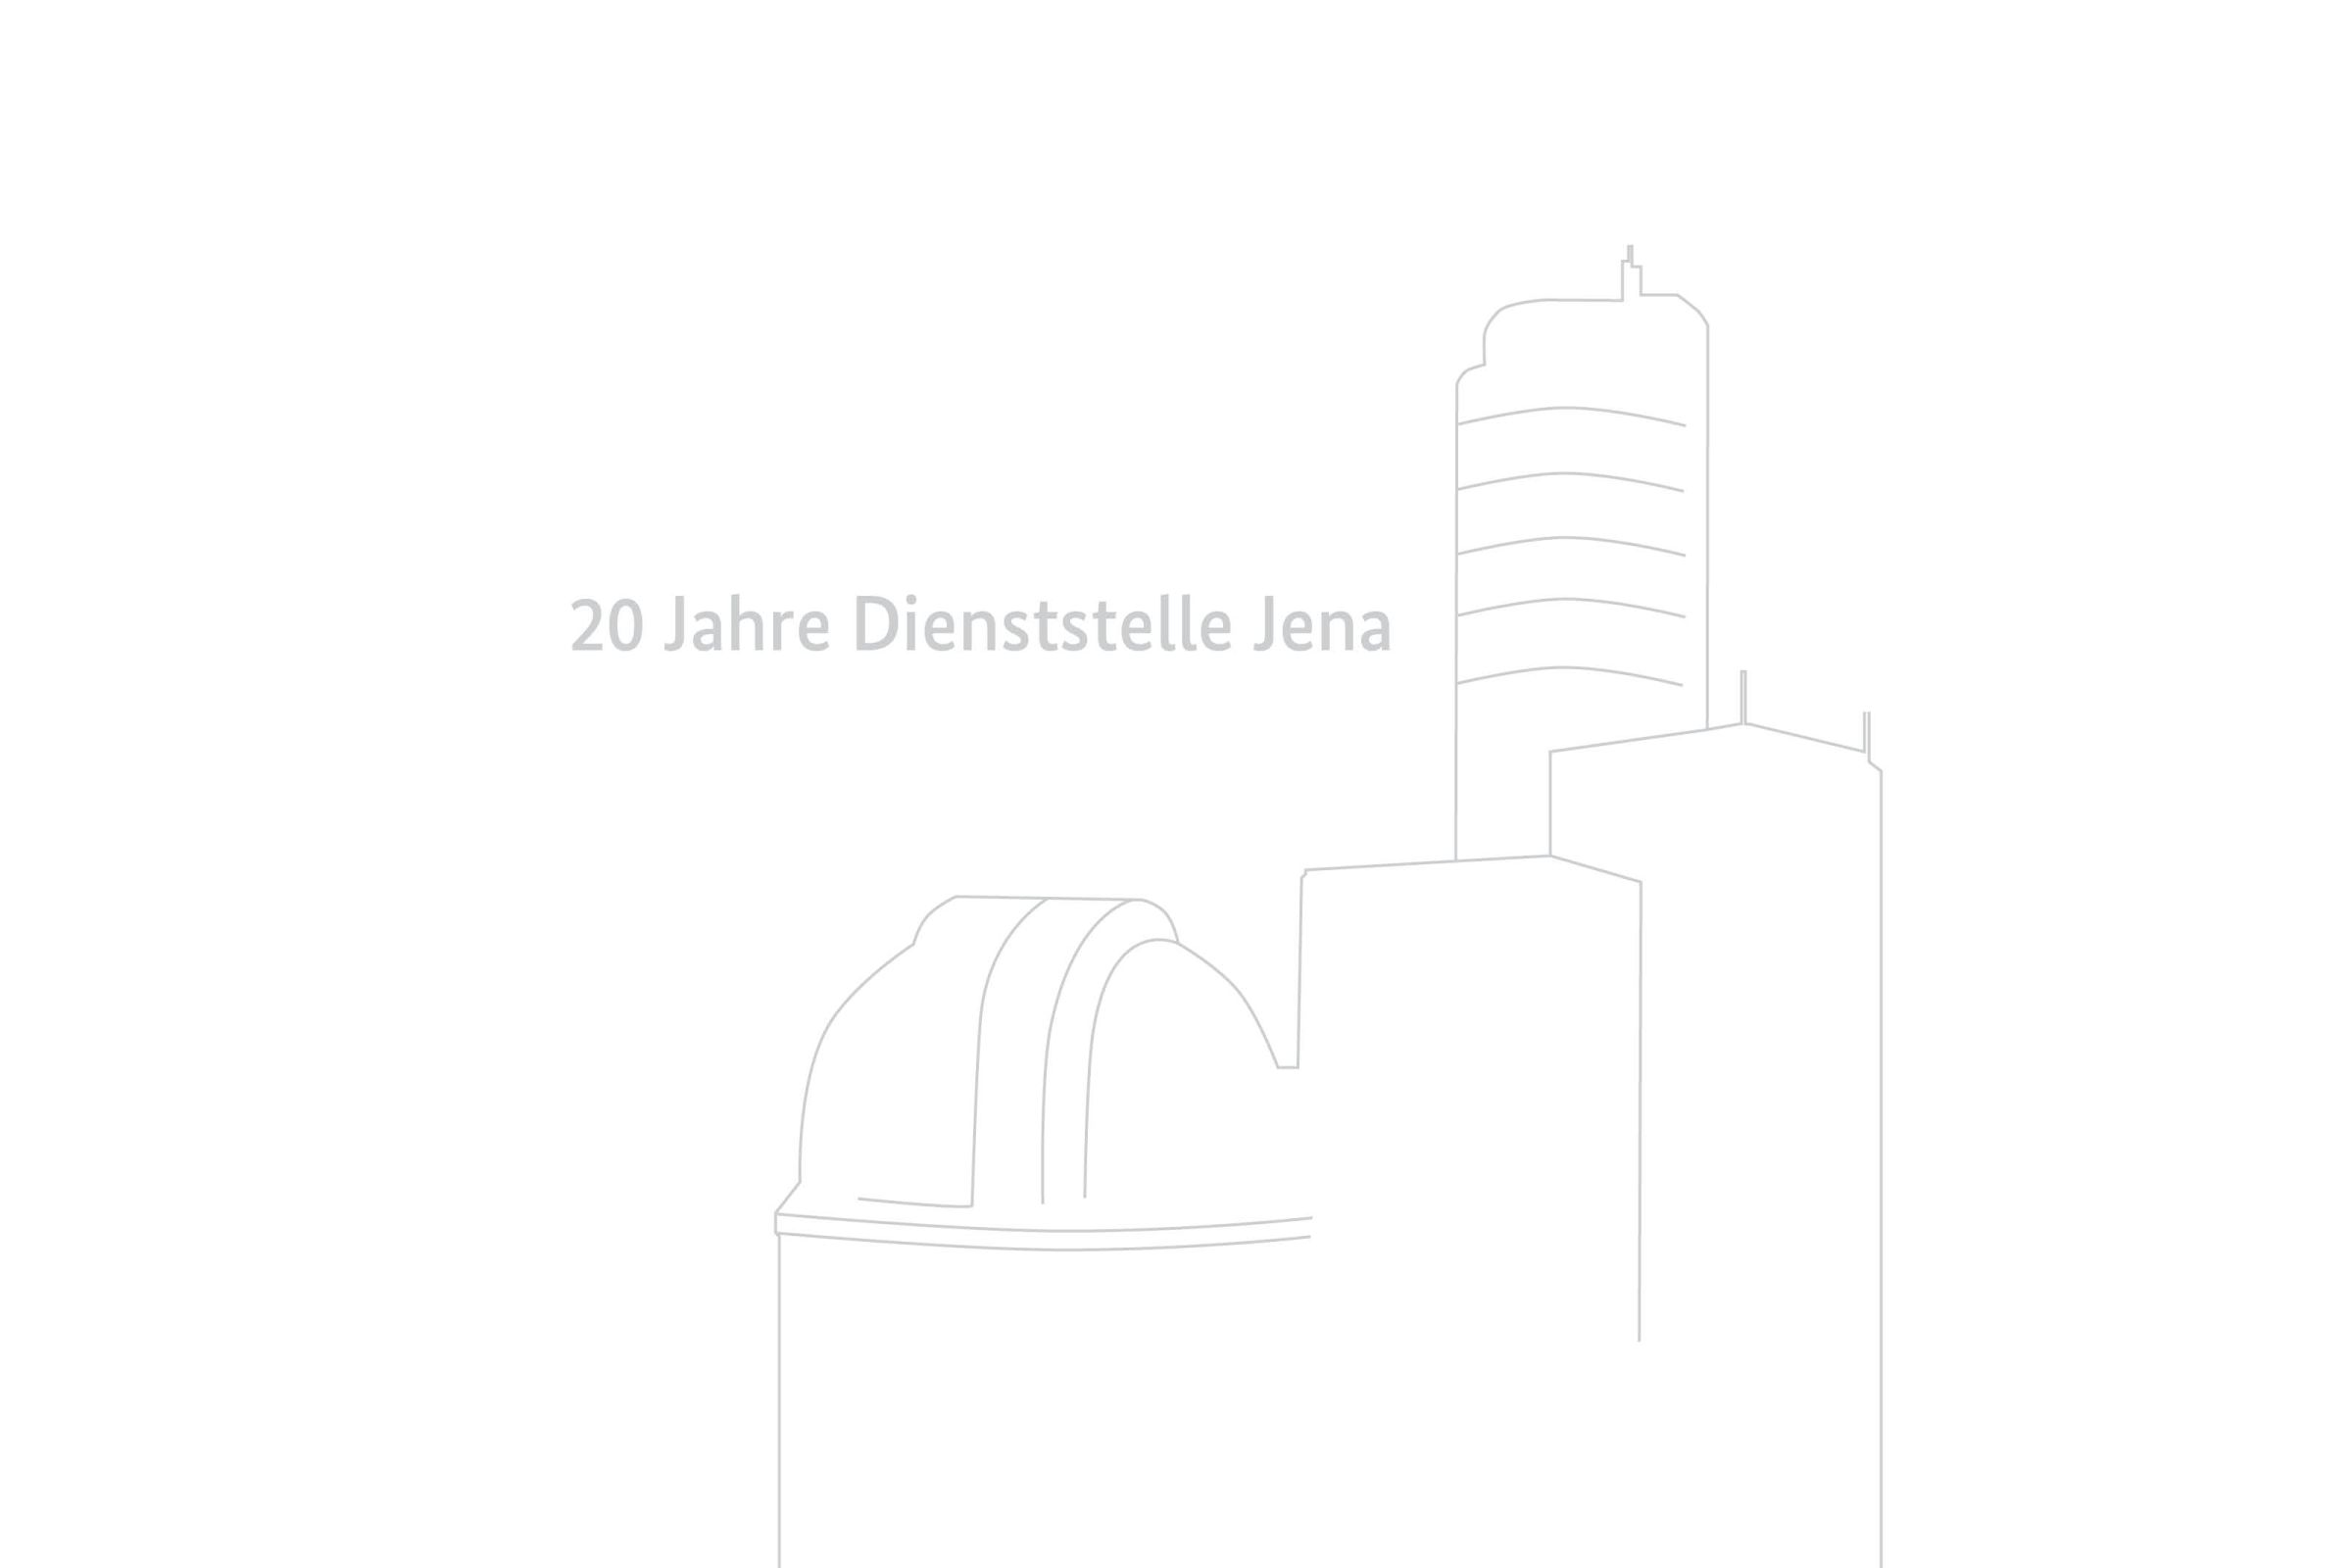 Zechinung Skyline Jena